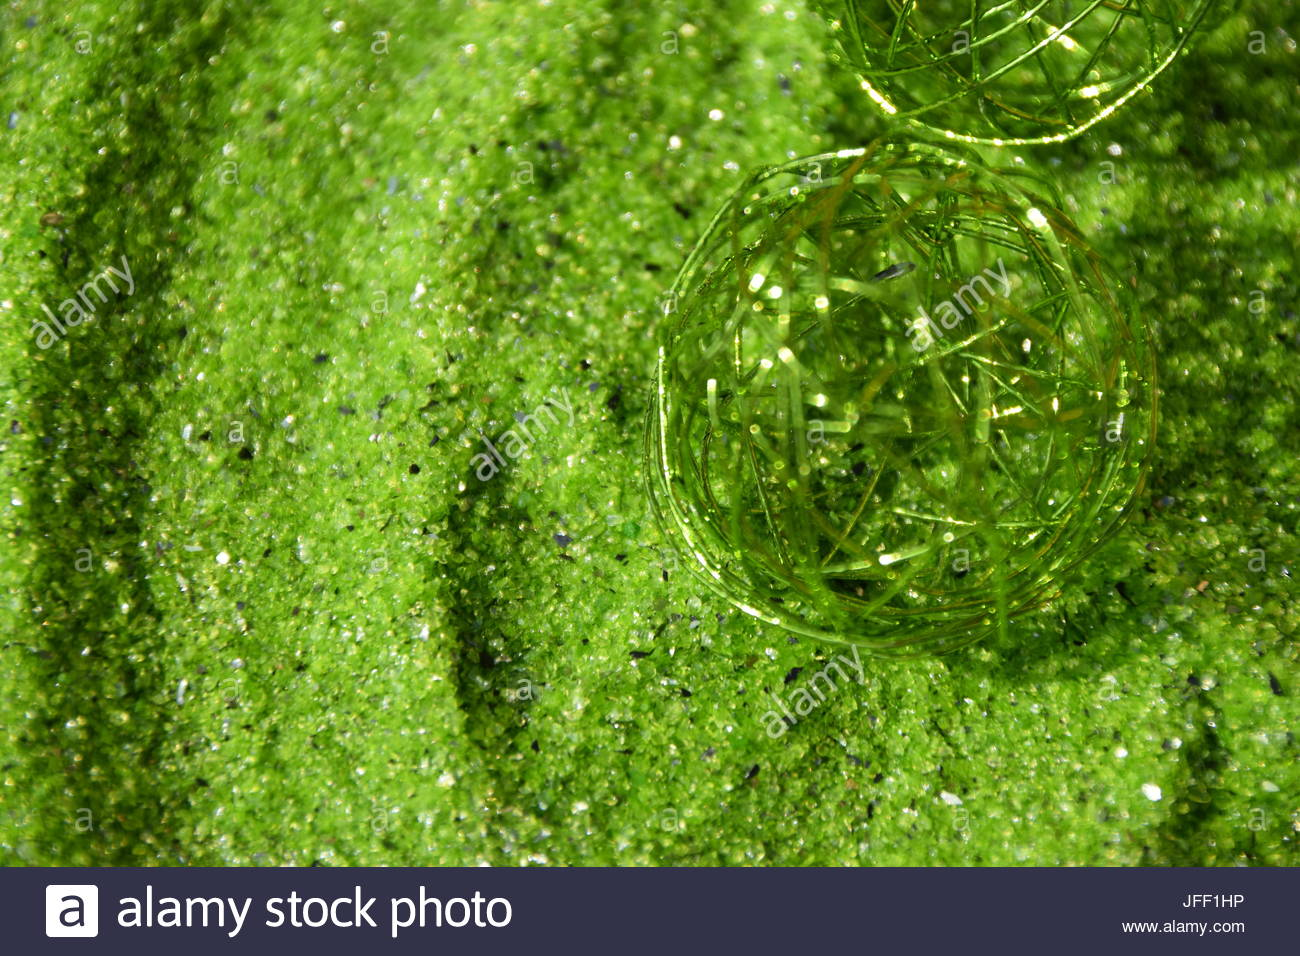 Green sand and green metal - Stock Image